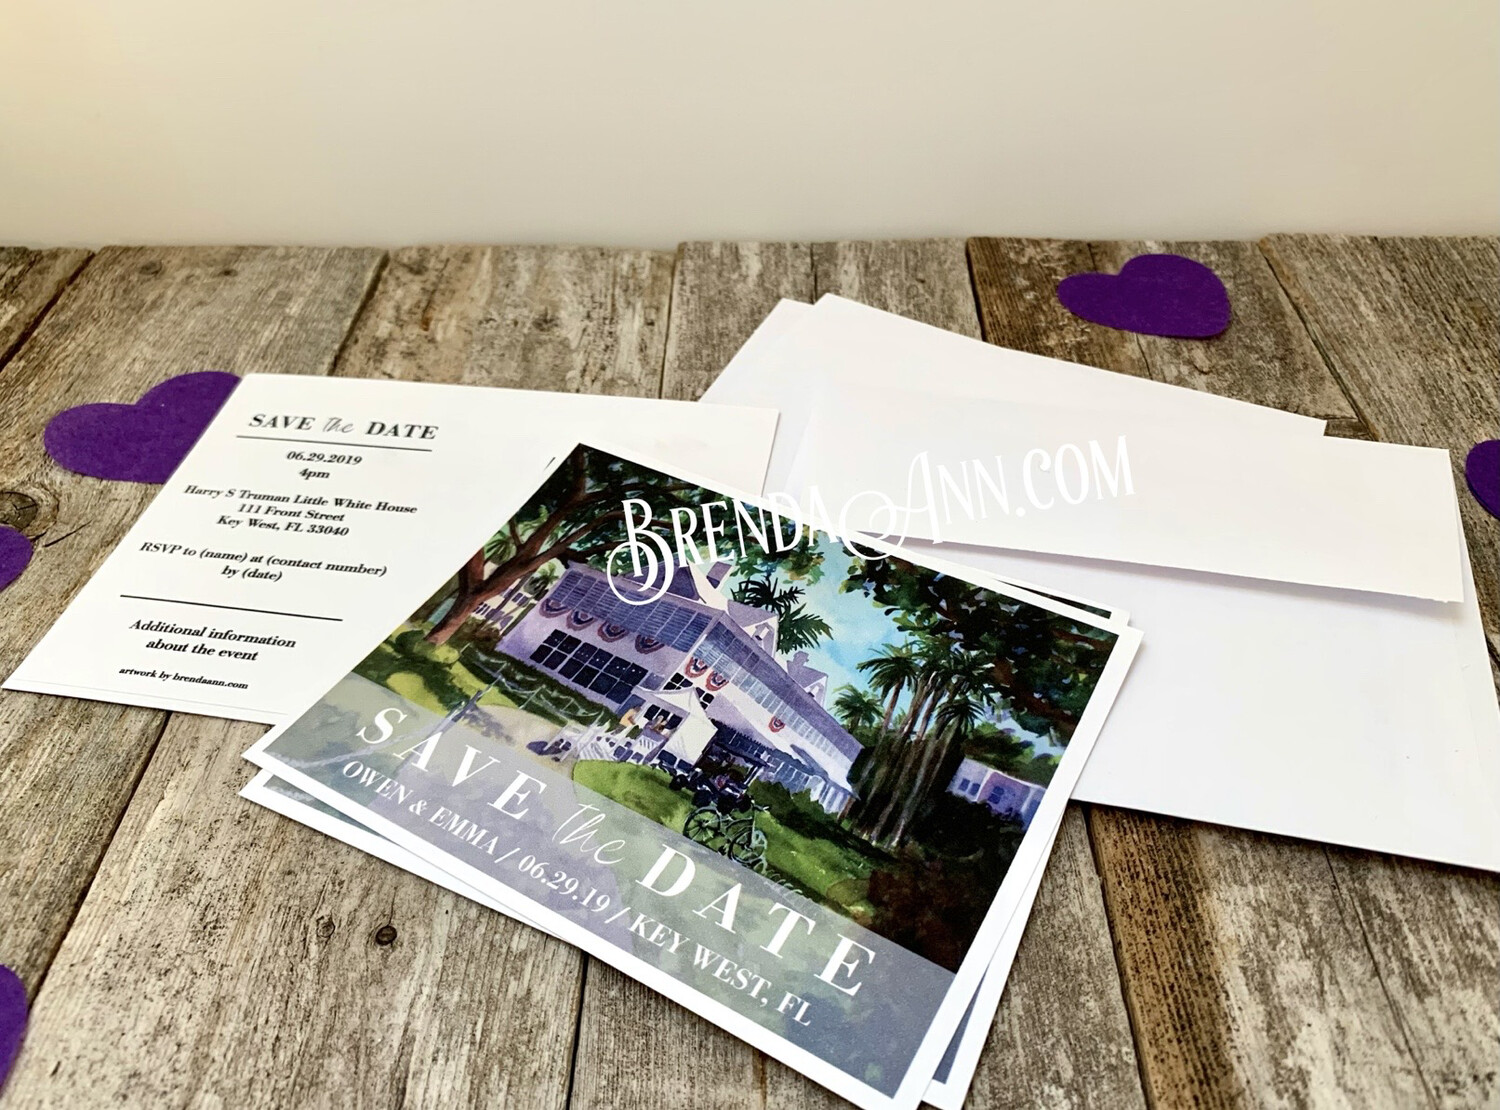 Wedding Save the Date Cards - Harry S. Truman Little White House in Key West FL - Watercolor by Brenda Ann